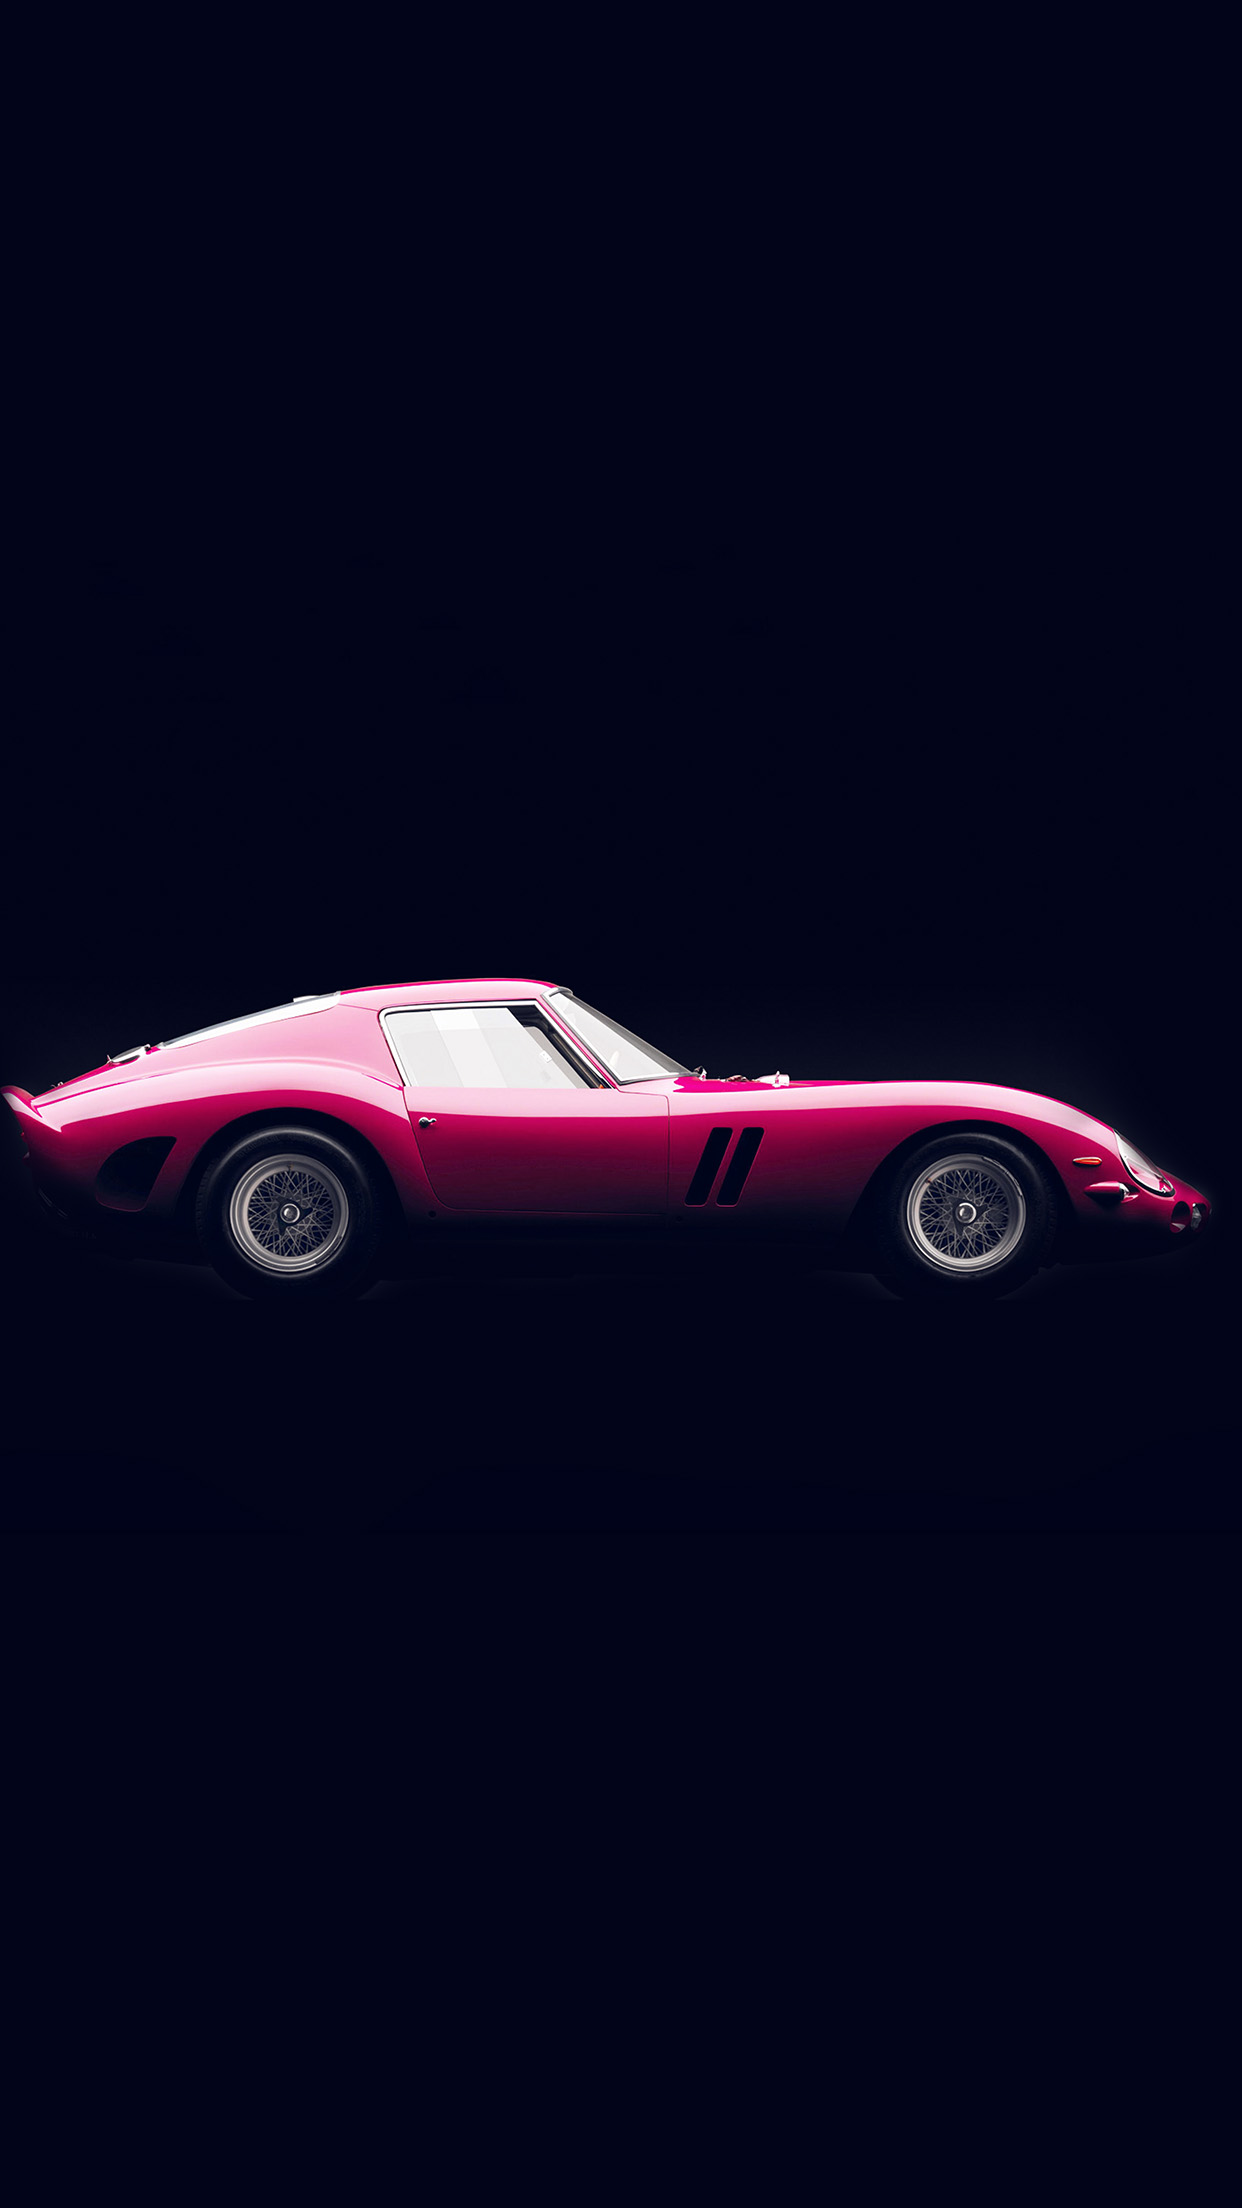 Wallpaper Cute For Iphone 6 Plus Aw62 Supercar Pink Ferrari 250 Gto Seriesi Illustration